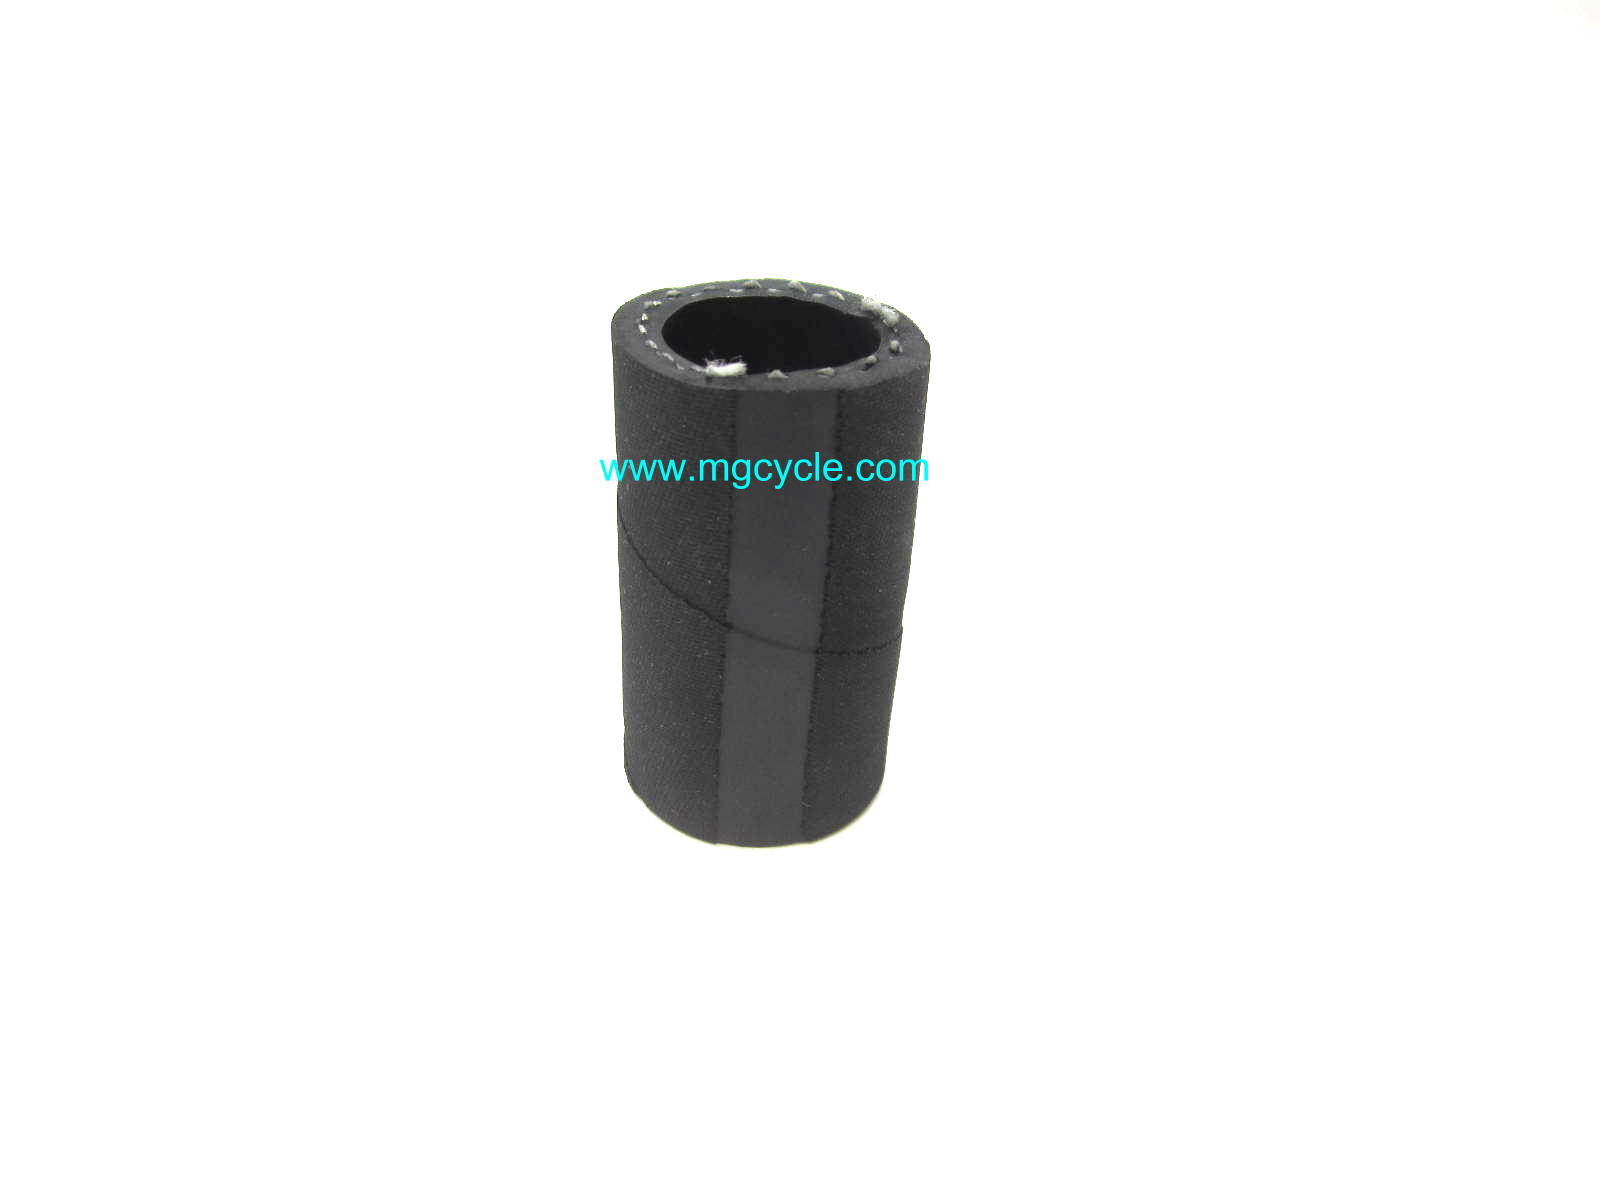 thumb size rubber hose for breather box